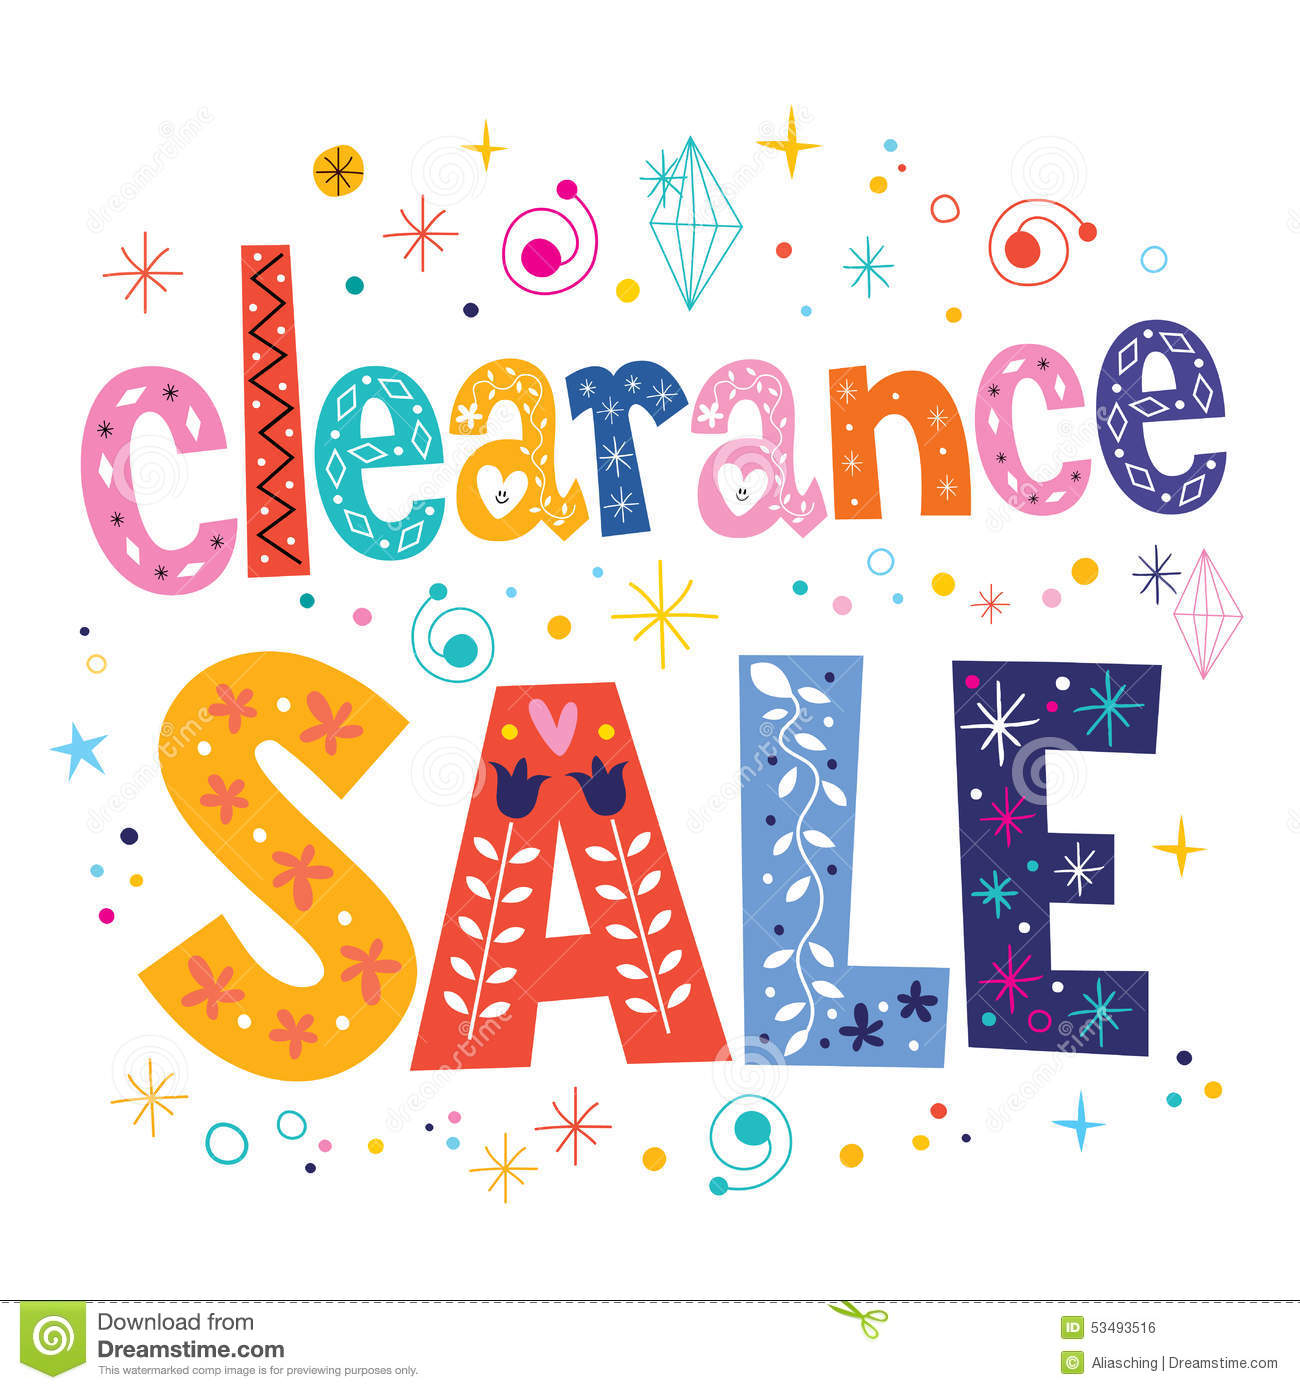 Clearance sale decorative lettering type design stock for Clearance craft supplies sale